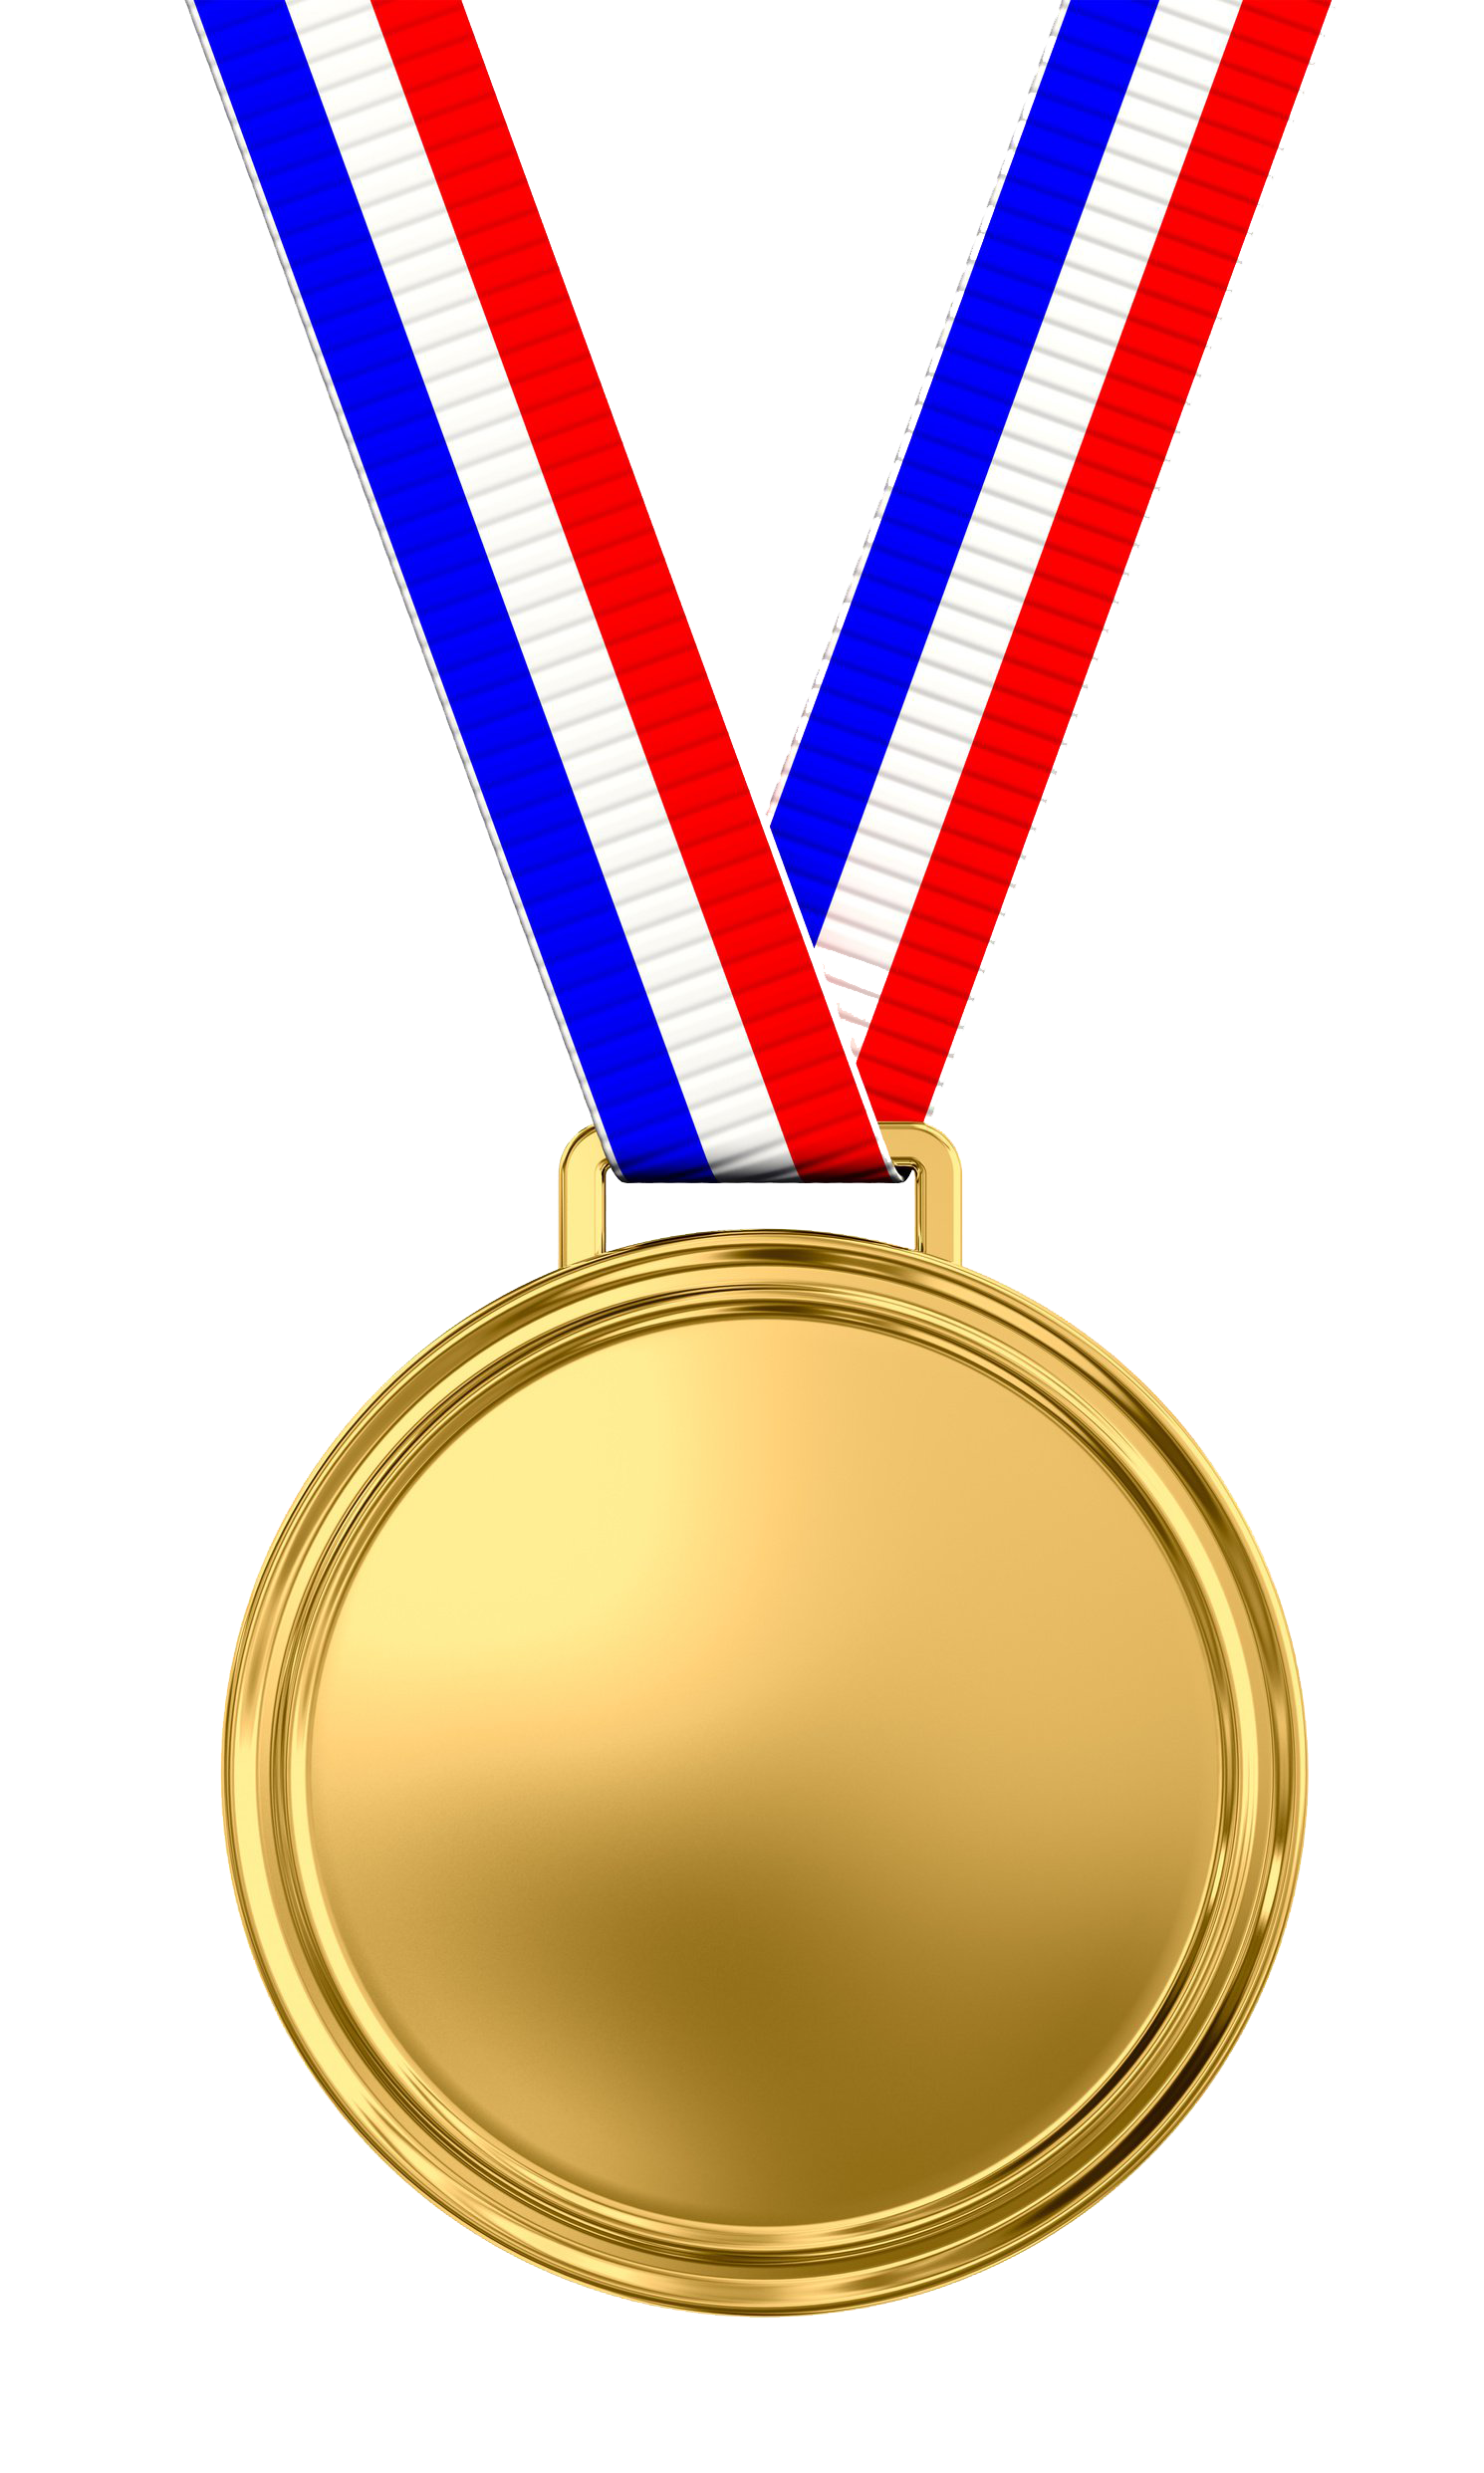 Medal HD PNG - 90715